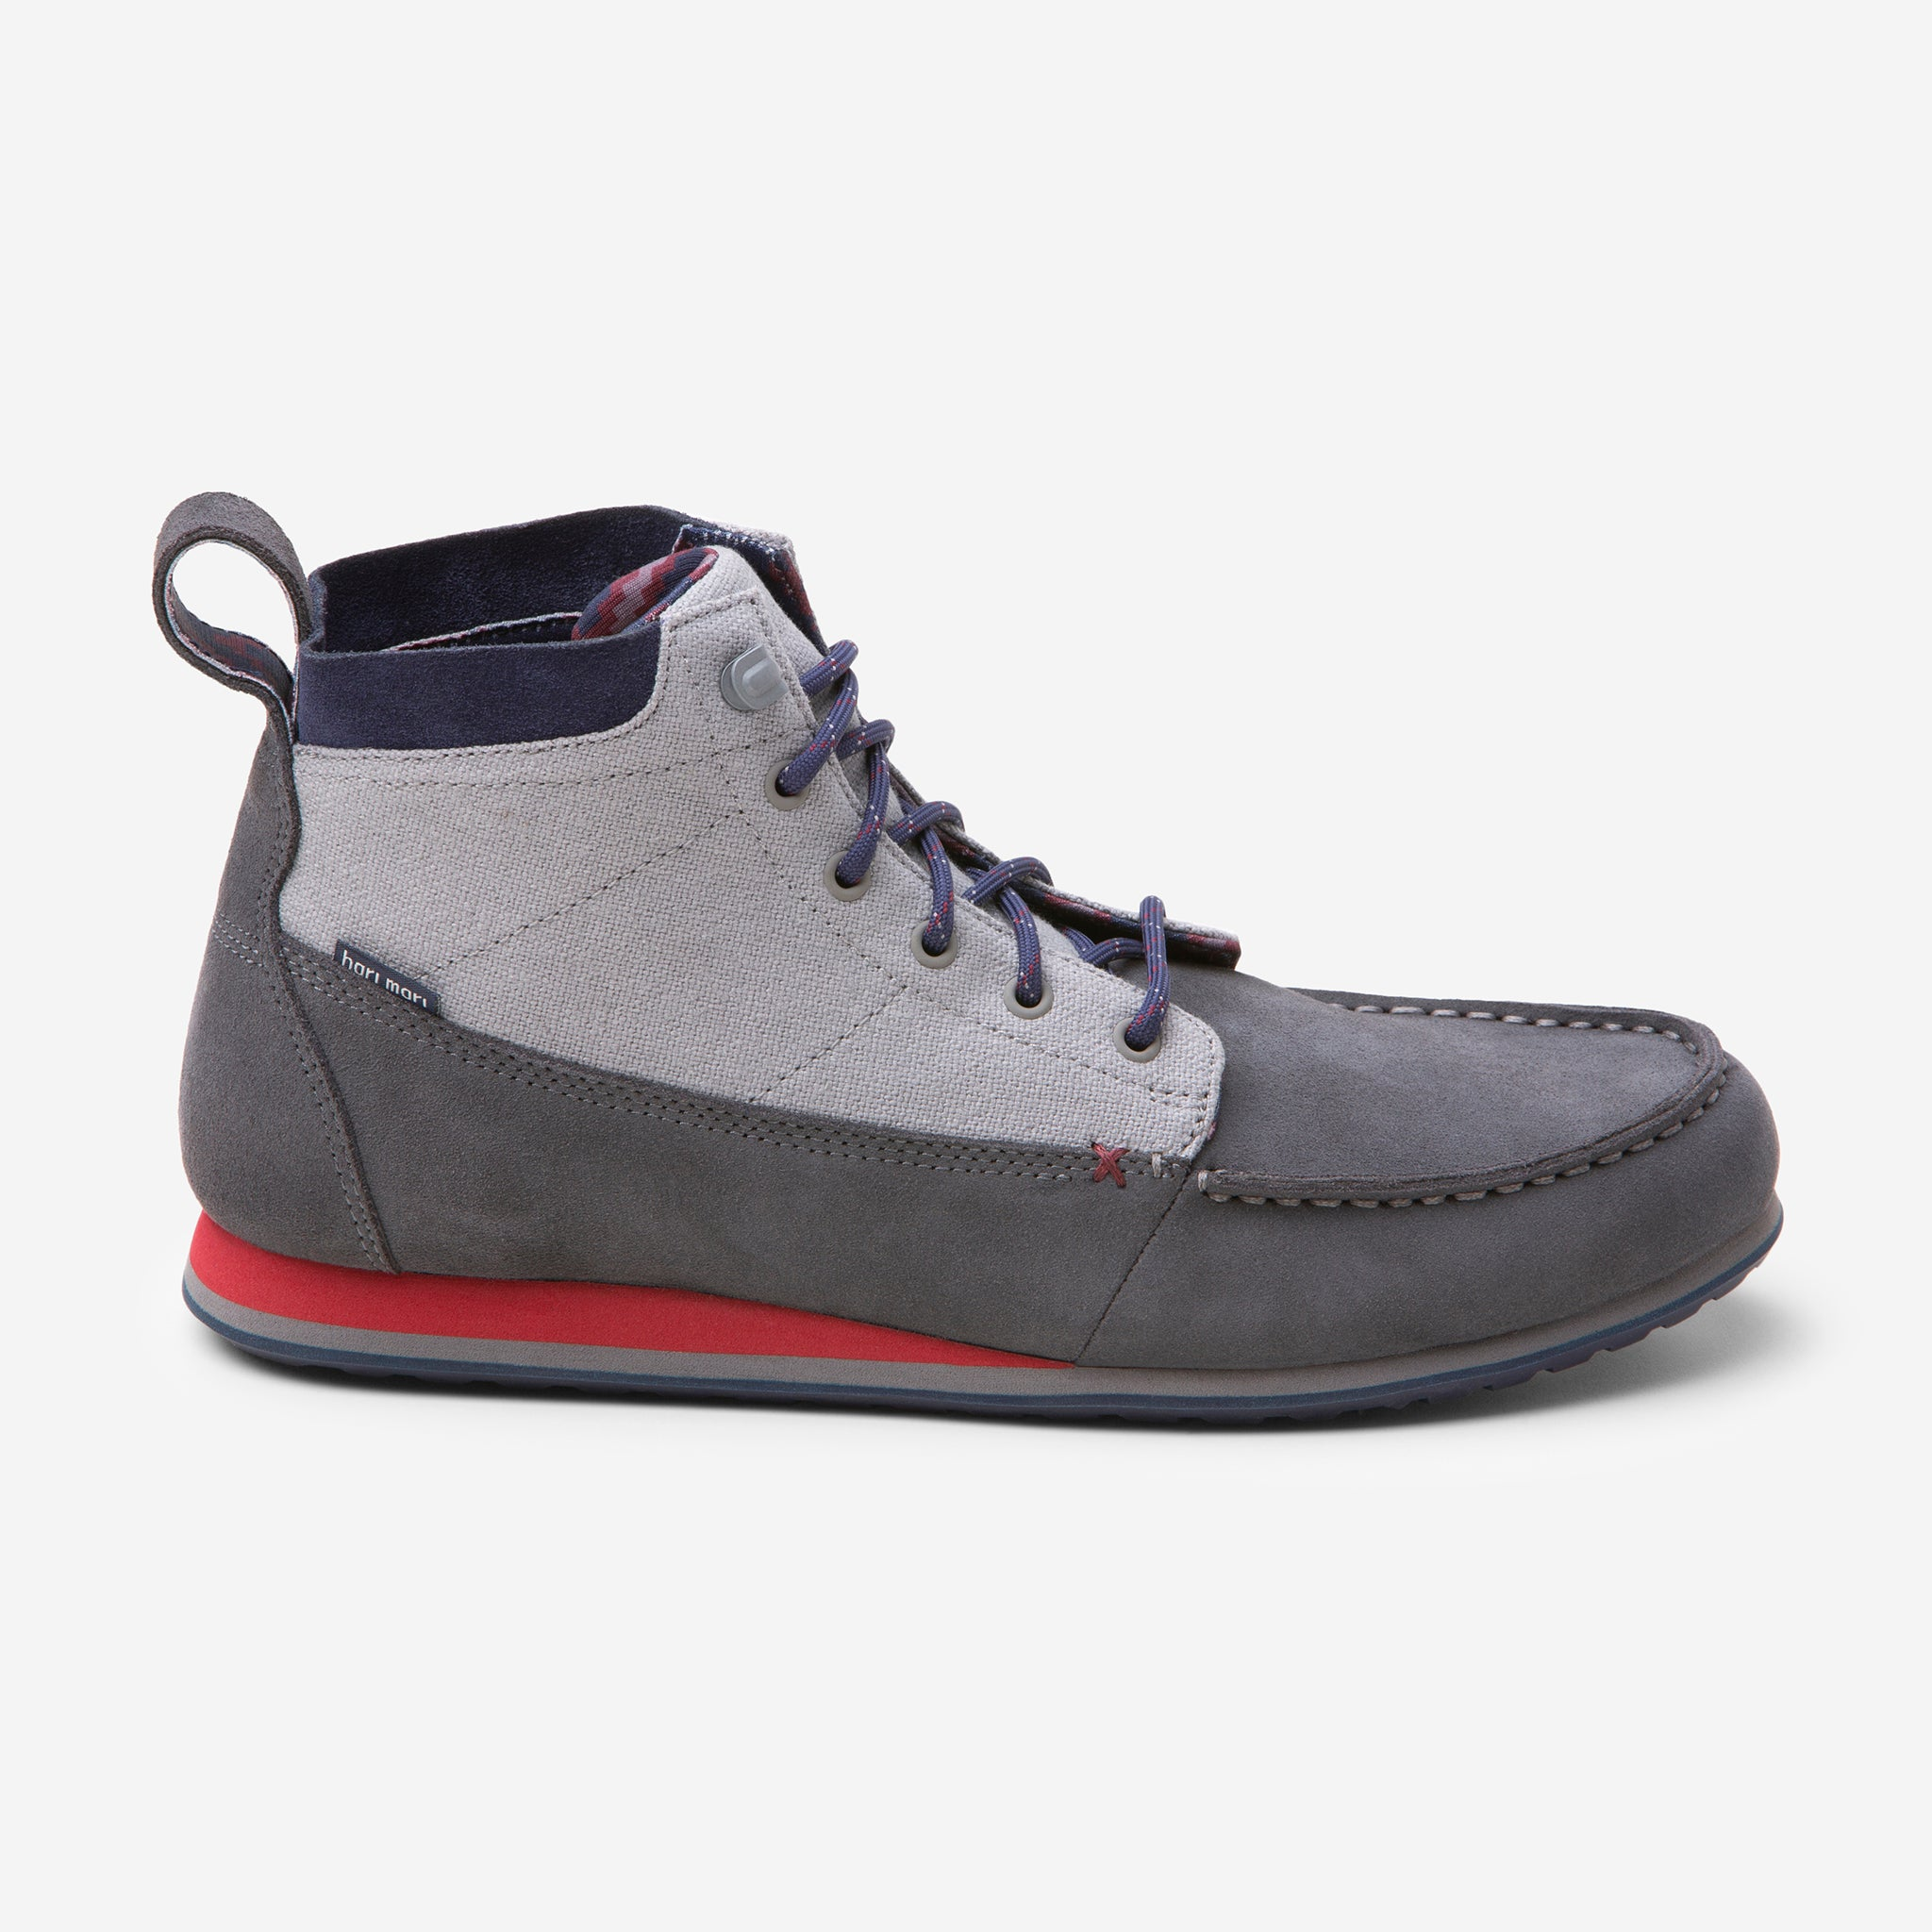 CanyonTreck Chukka - Men's - Gray - Side View